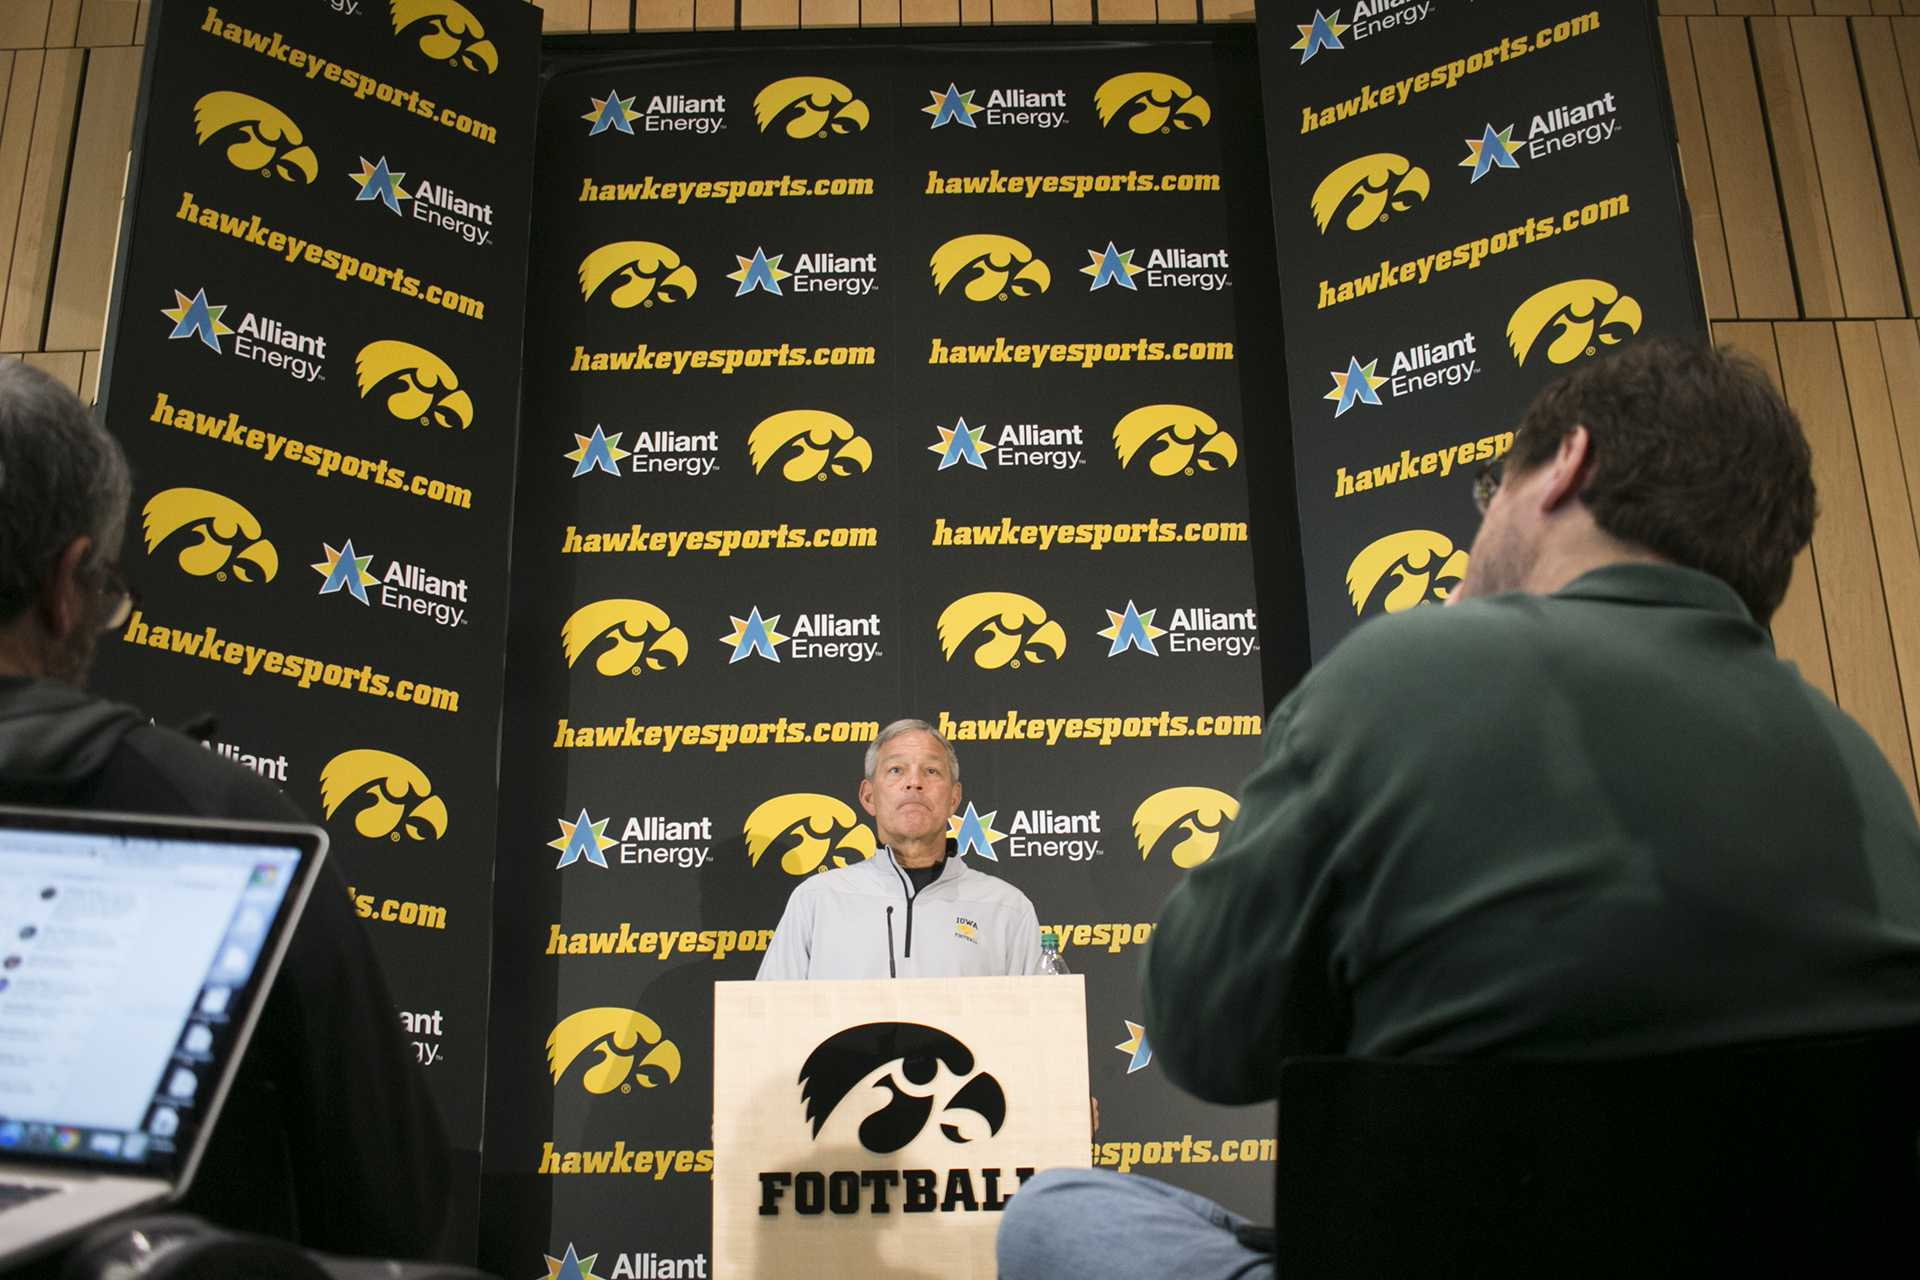 Iowa head coach Kirk Ferentz speaks with members of the media during a media availability in the Hansen Football Performance Center on Sunday, Dec. 3, 2017. The Hawkeyes accepted an invitation to play Boston College at the New Era Pinstripe Bowl in New York City on Wednesday, Dec. 27. (Joseph Cress/The Daily Iowan)